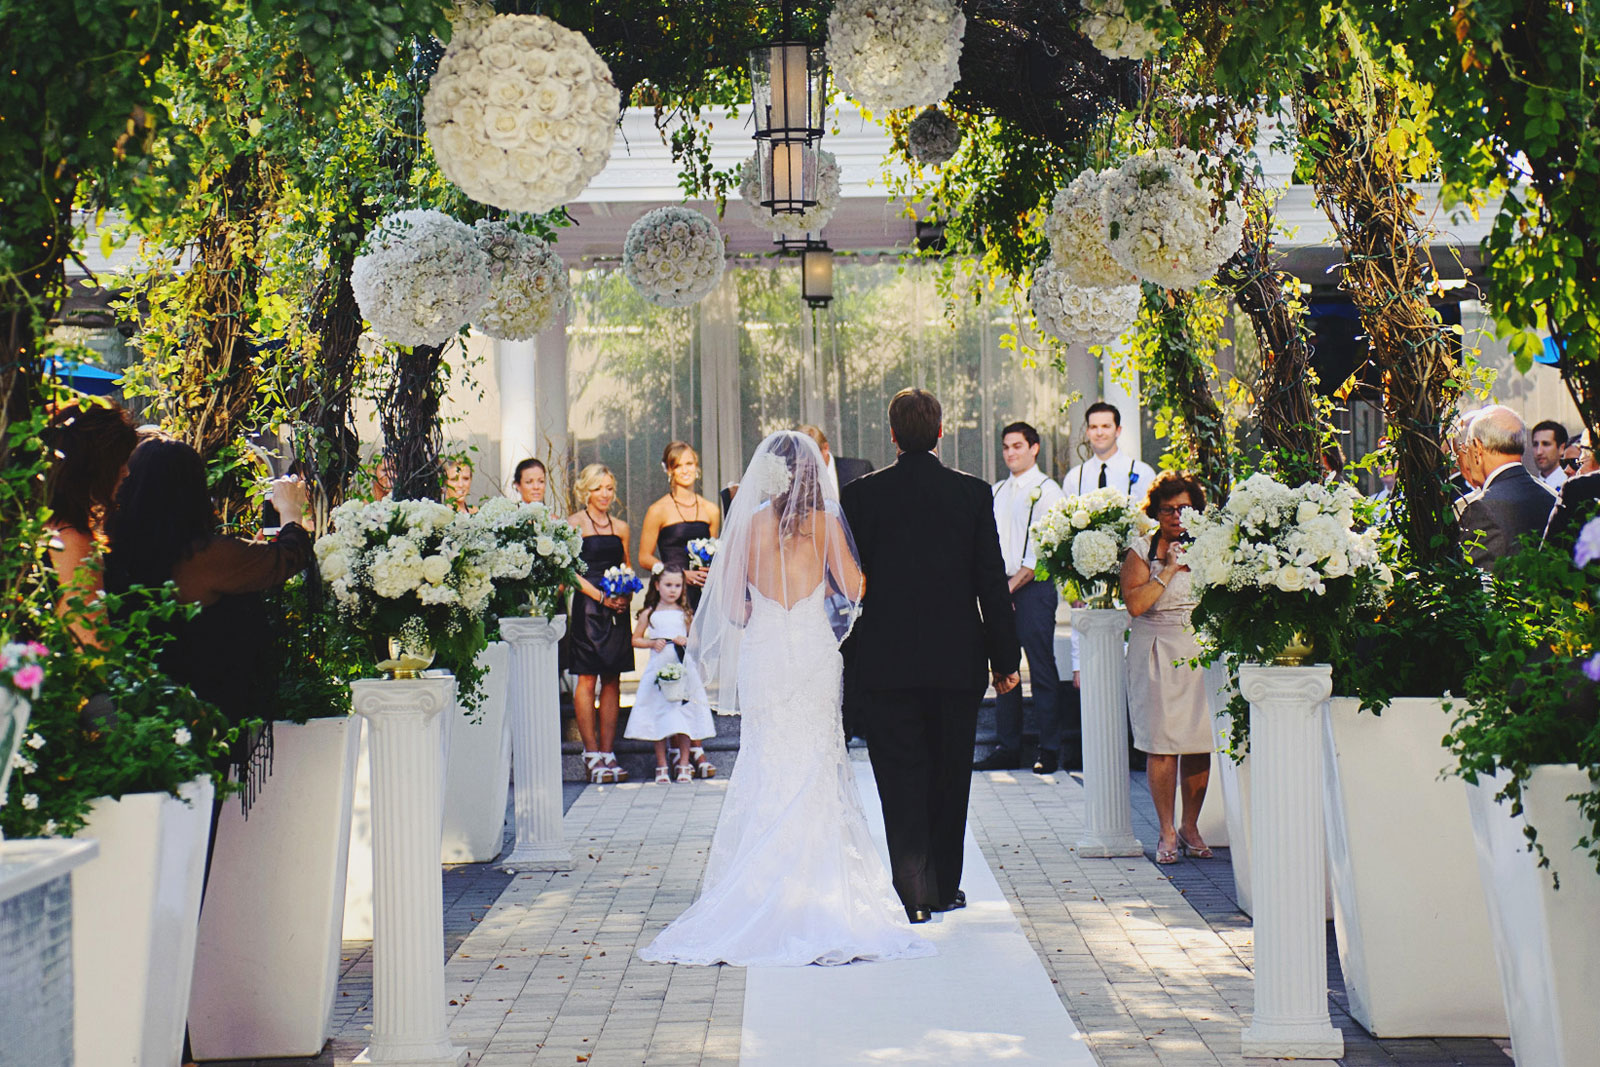 Chateau Briand Garden Wedding Aisle